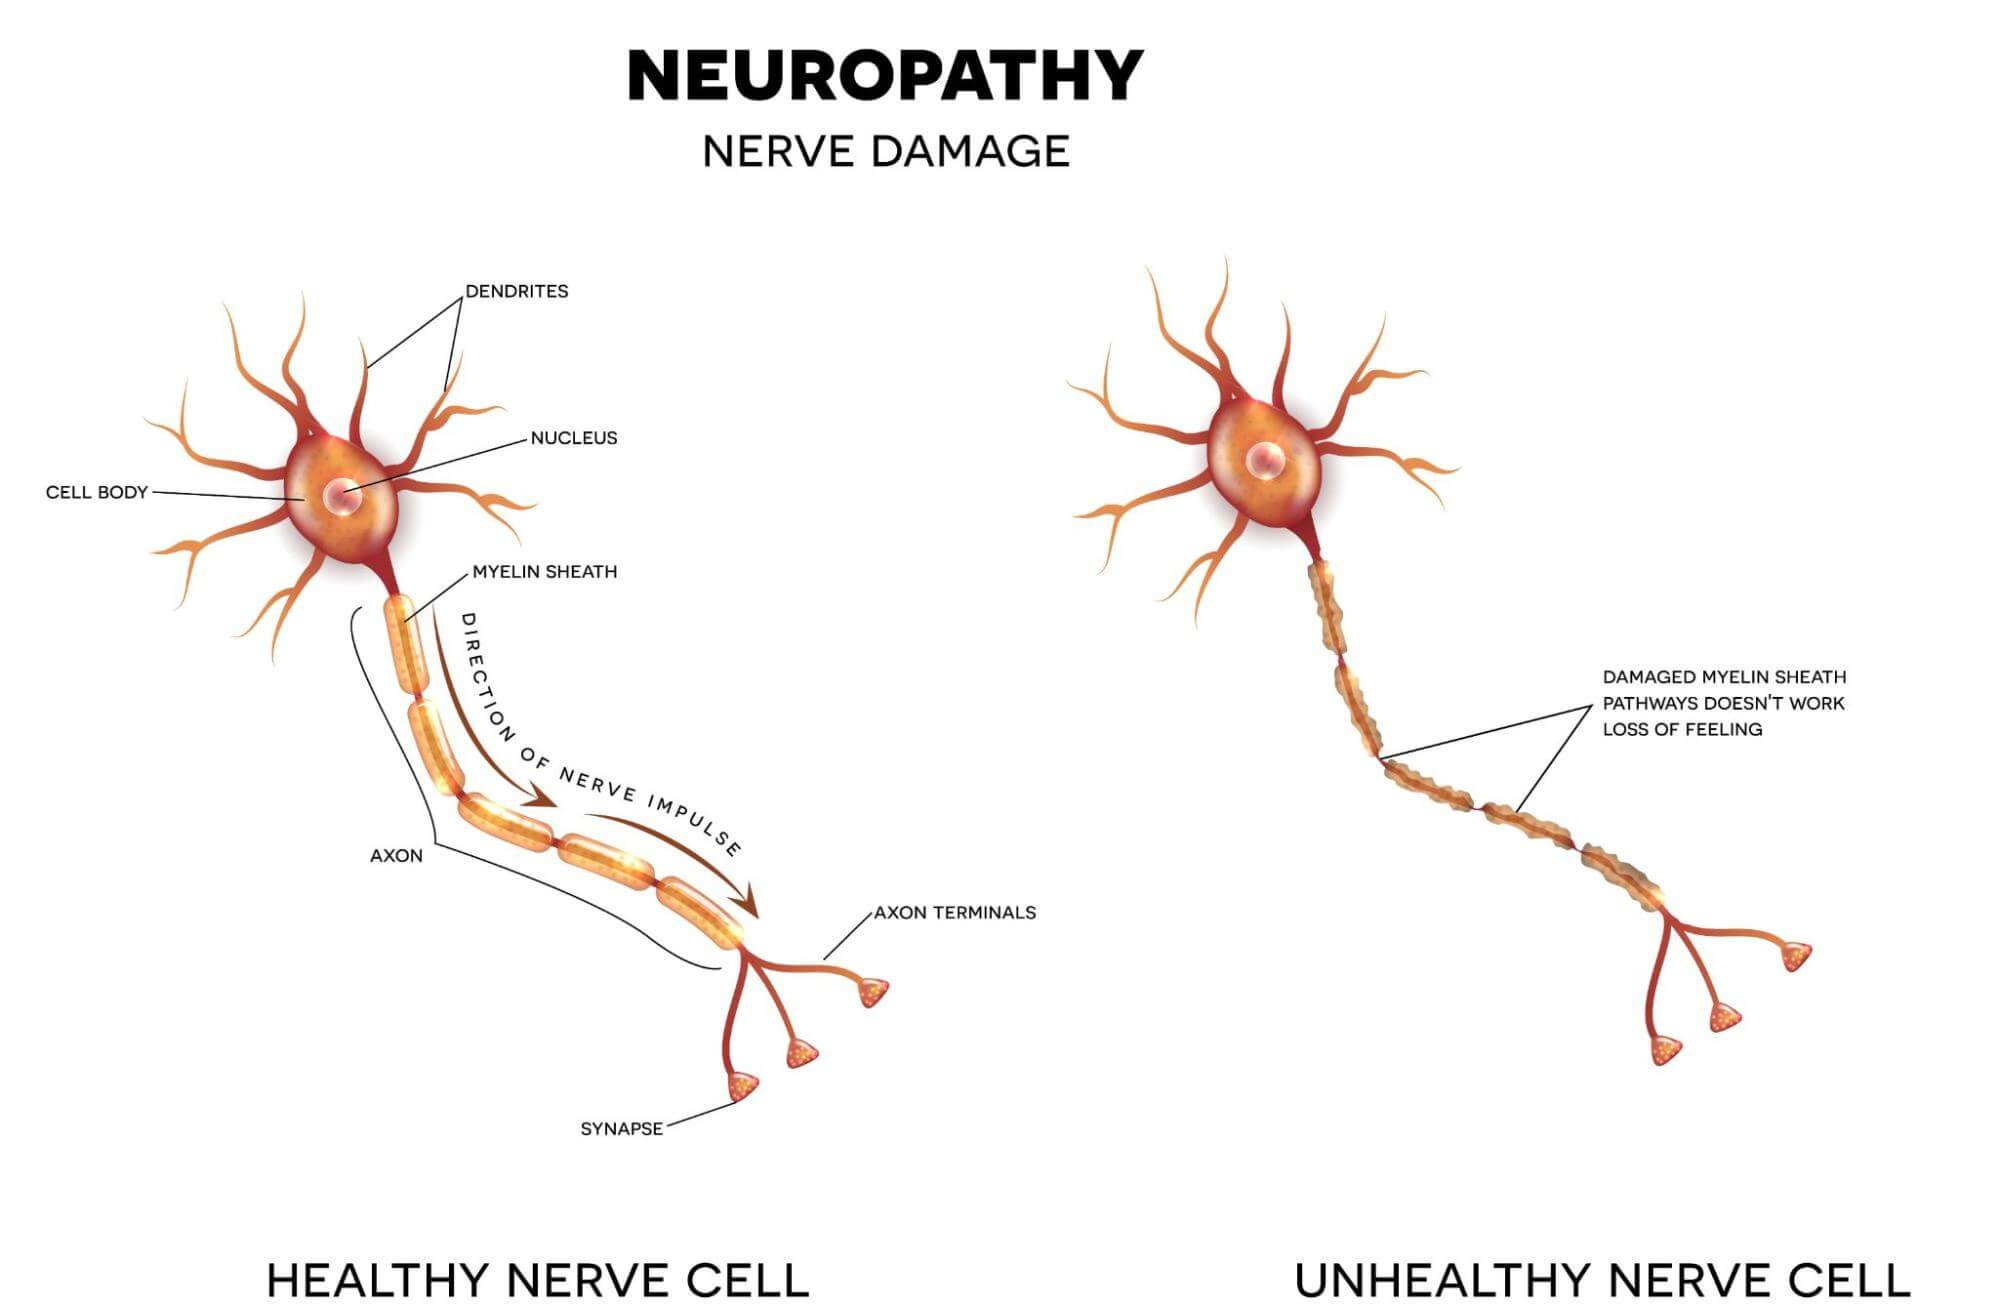 Image of a healthy nerve vs an unhealthy nerve